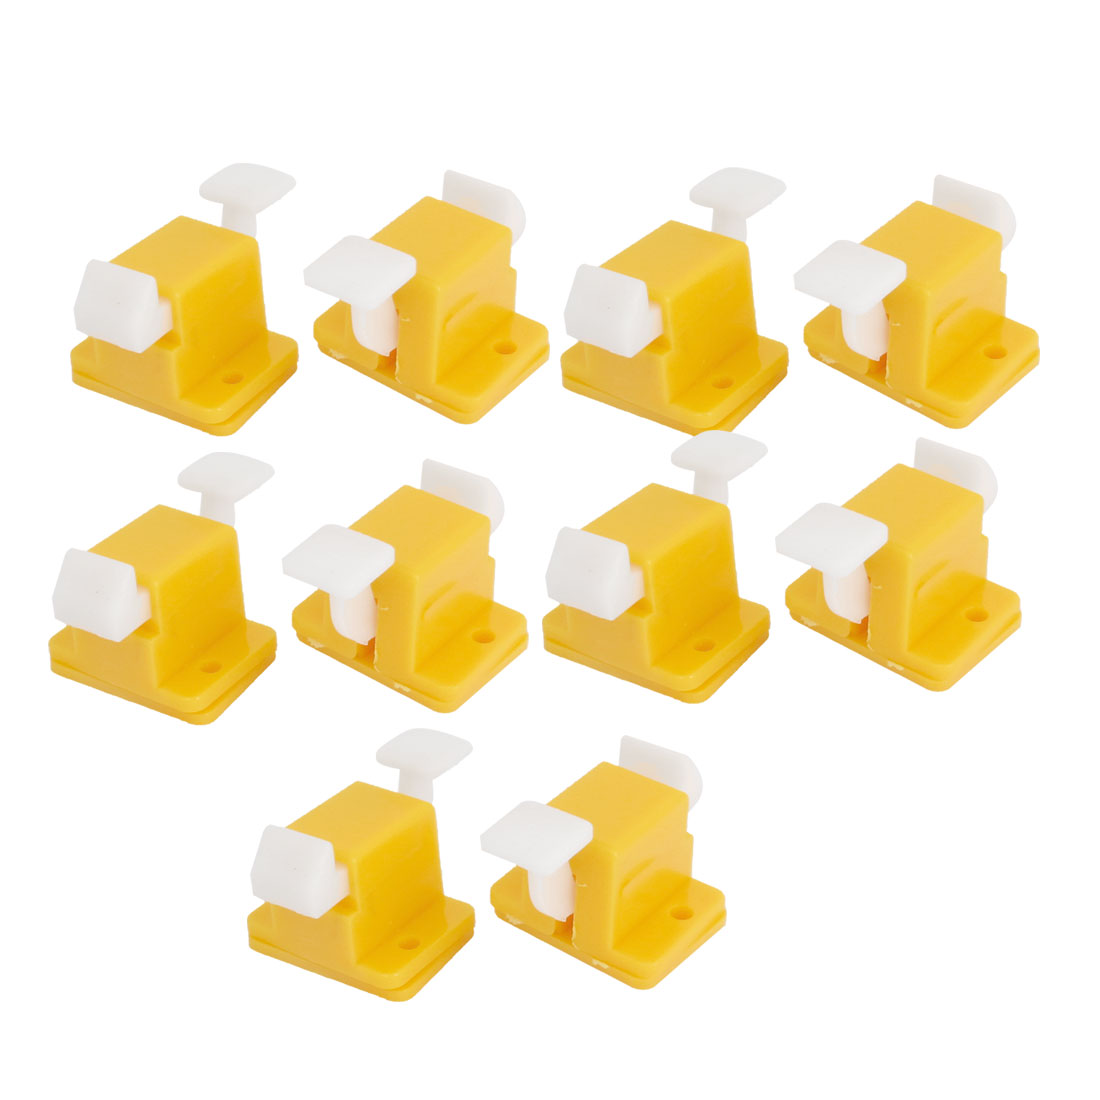 10PCS Plastic Test Fixture Jig Locks for PCB Board Soldering Wire Wrapping